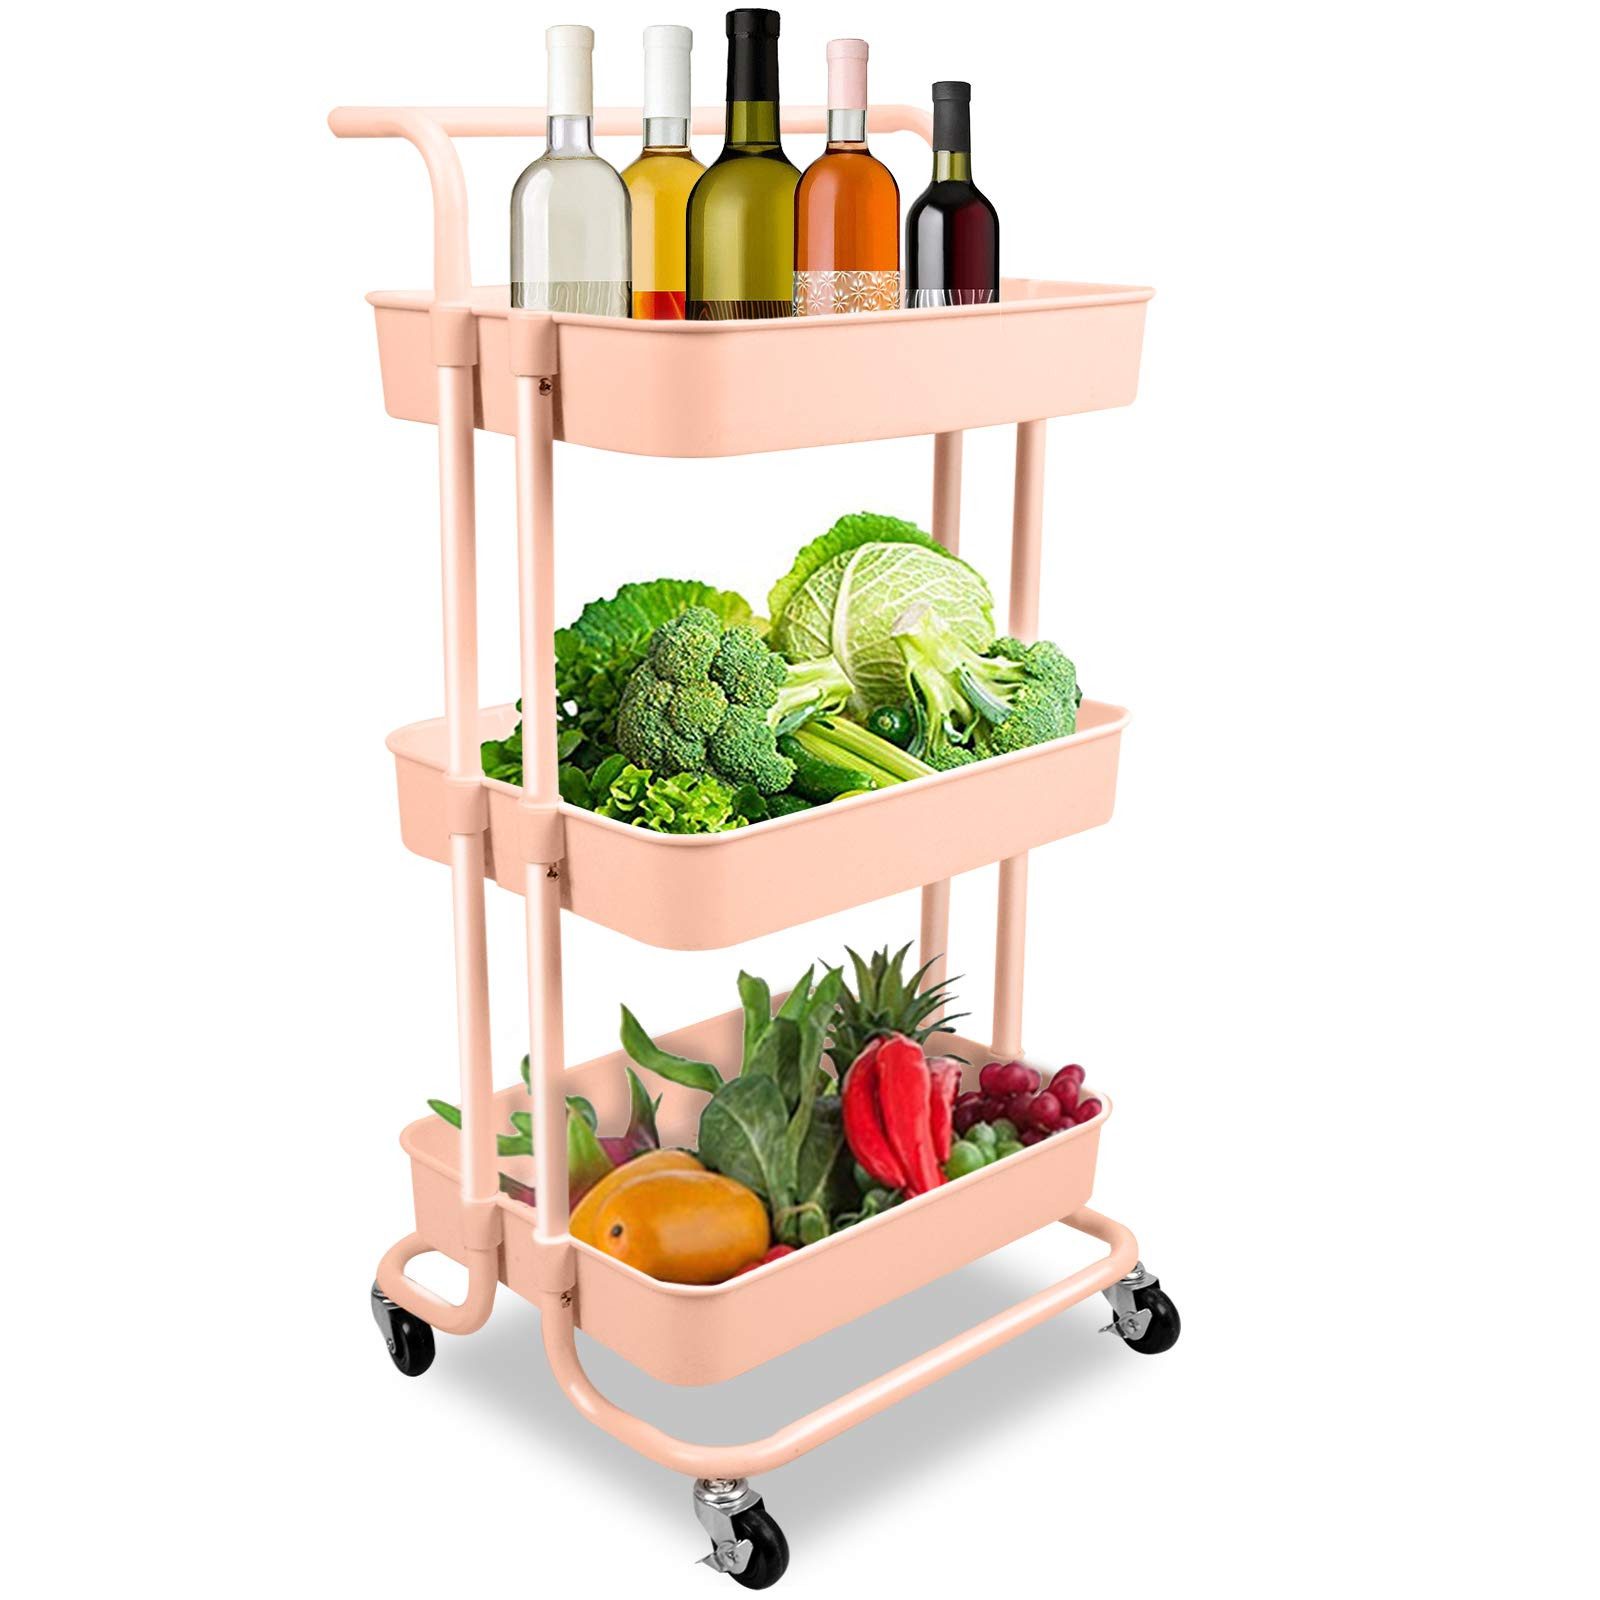 Voilamart 3-Tier Rolling Utility Cart,Multifunctional Organization Storage Cart with Locking Wheels,Rolling Storage Organizer with Mesh Basket and Handle for Kitchen, Bathroom, Office, Pink